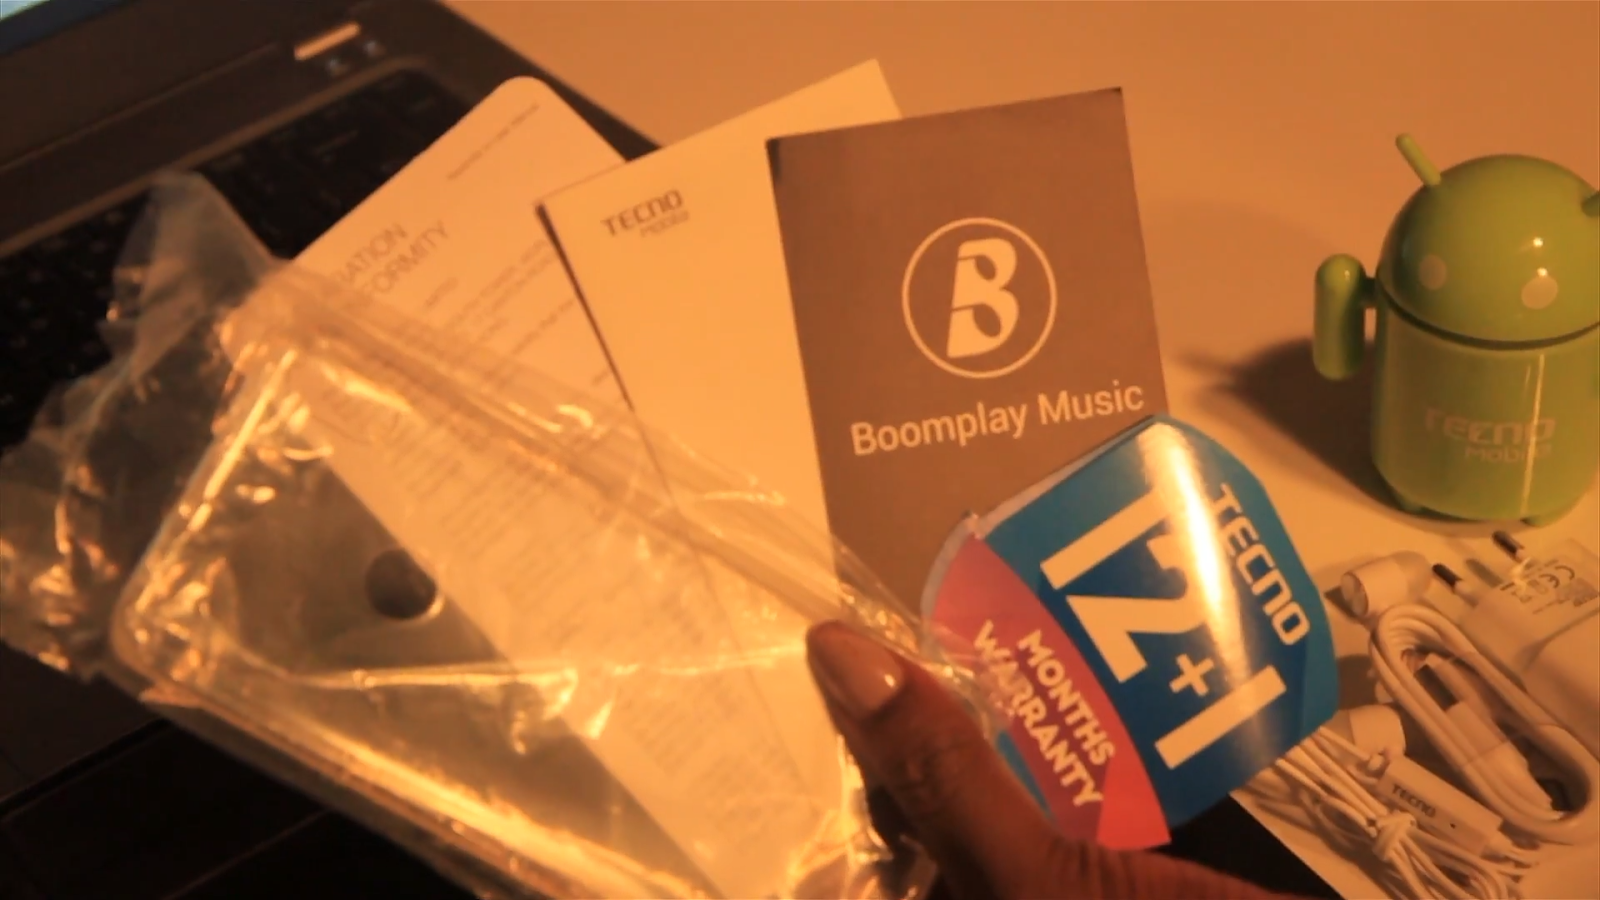 User manual, warranty card and boomplay music card